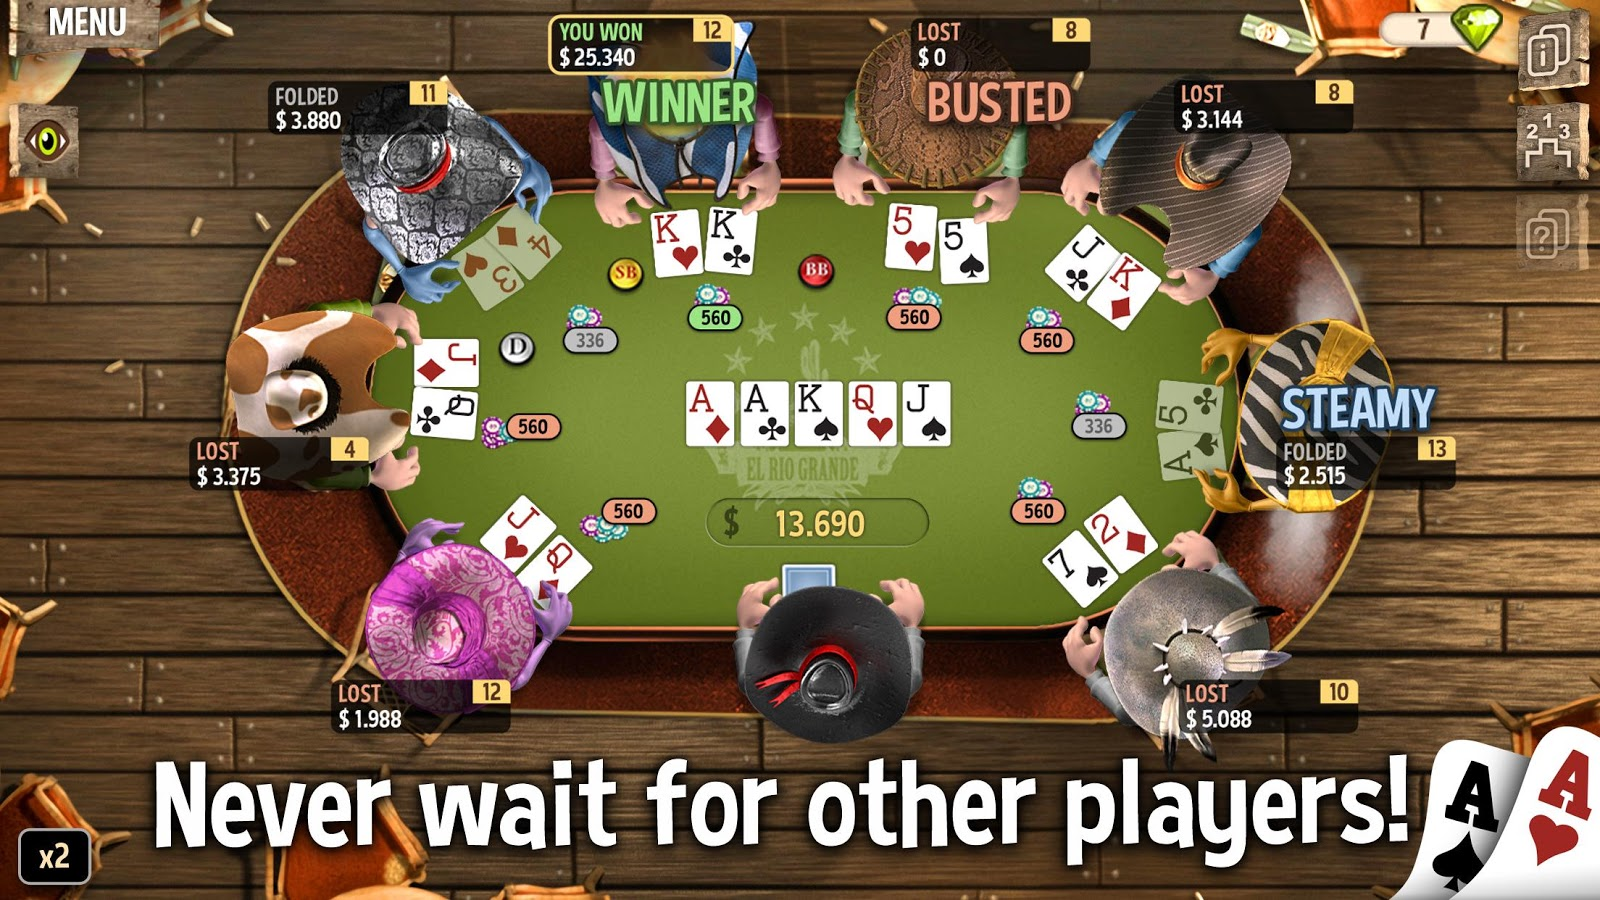 Governor of Poker 2 Premium Screenshot 11